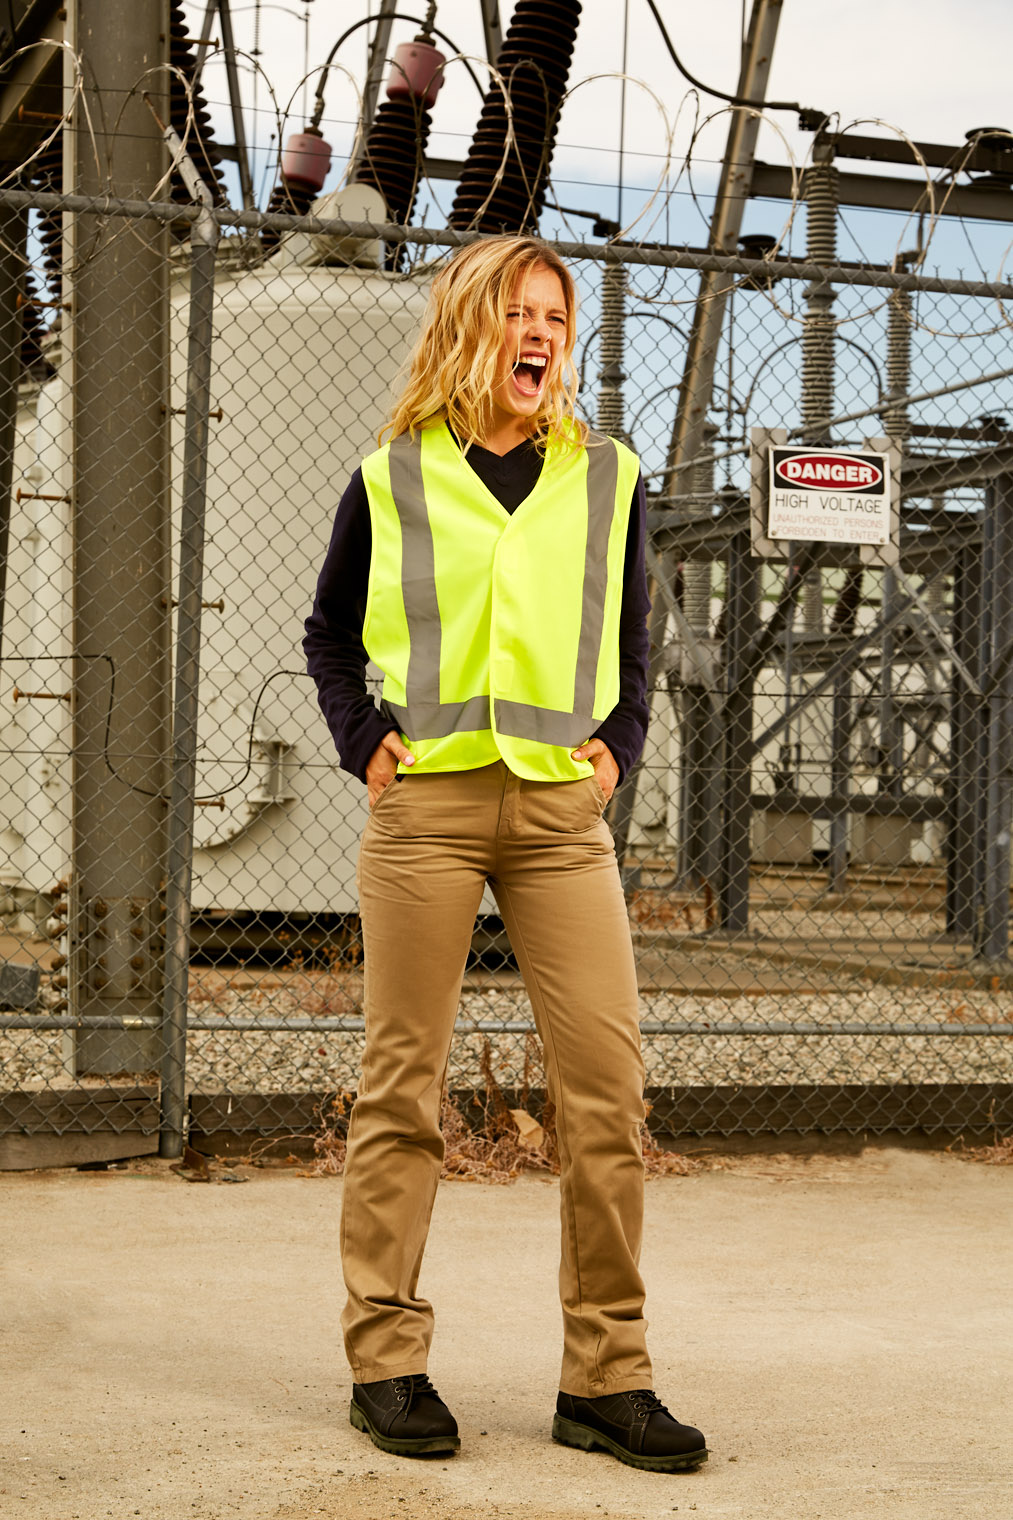 woman in flame retardant reflective vest on worksite - workwear photoshoot Los Angeles